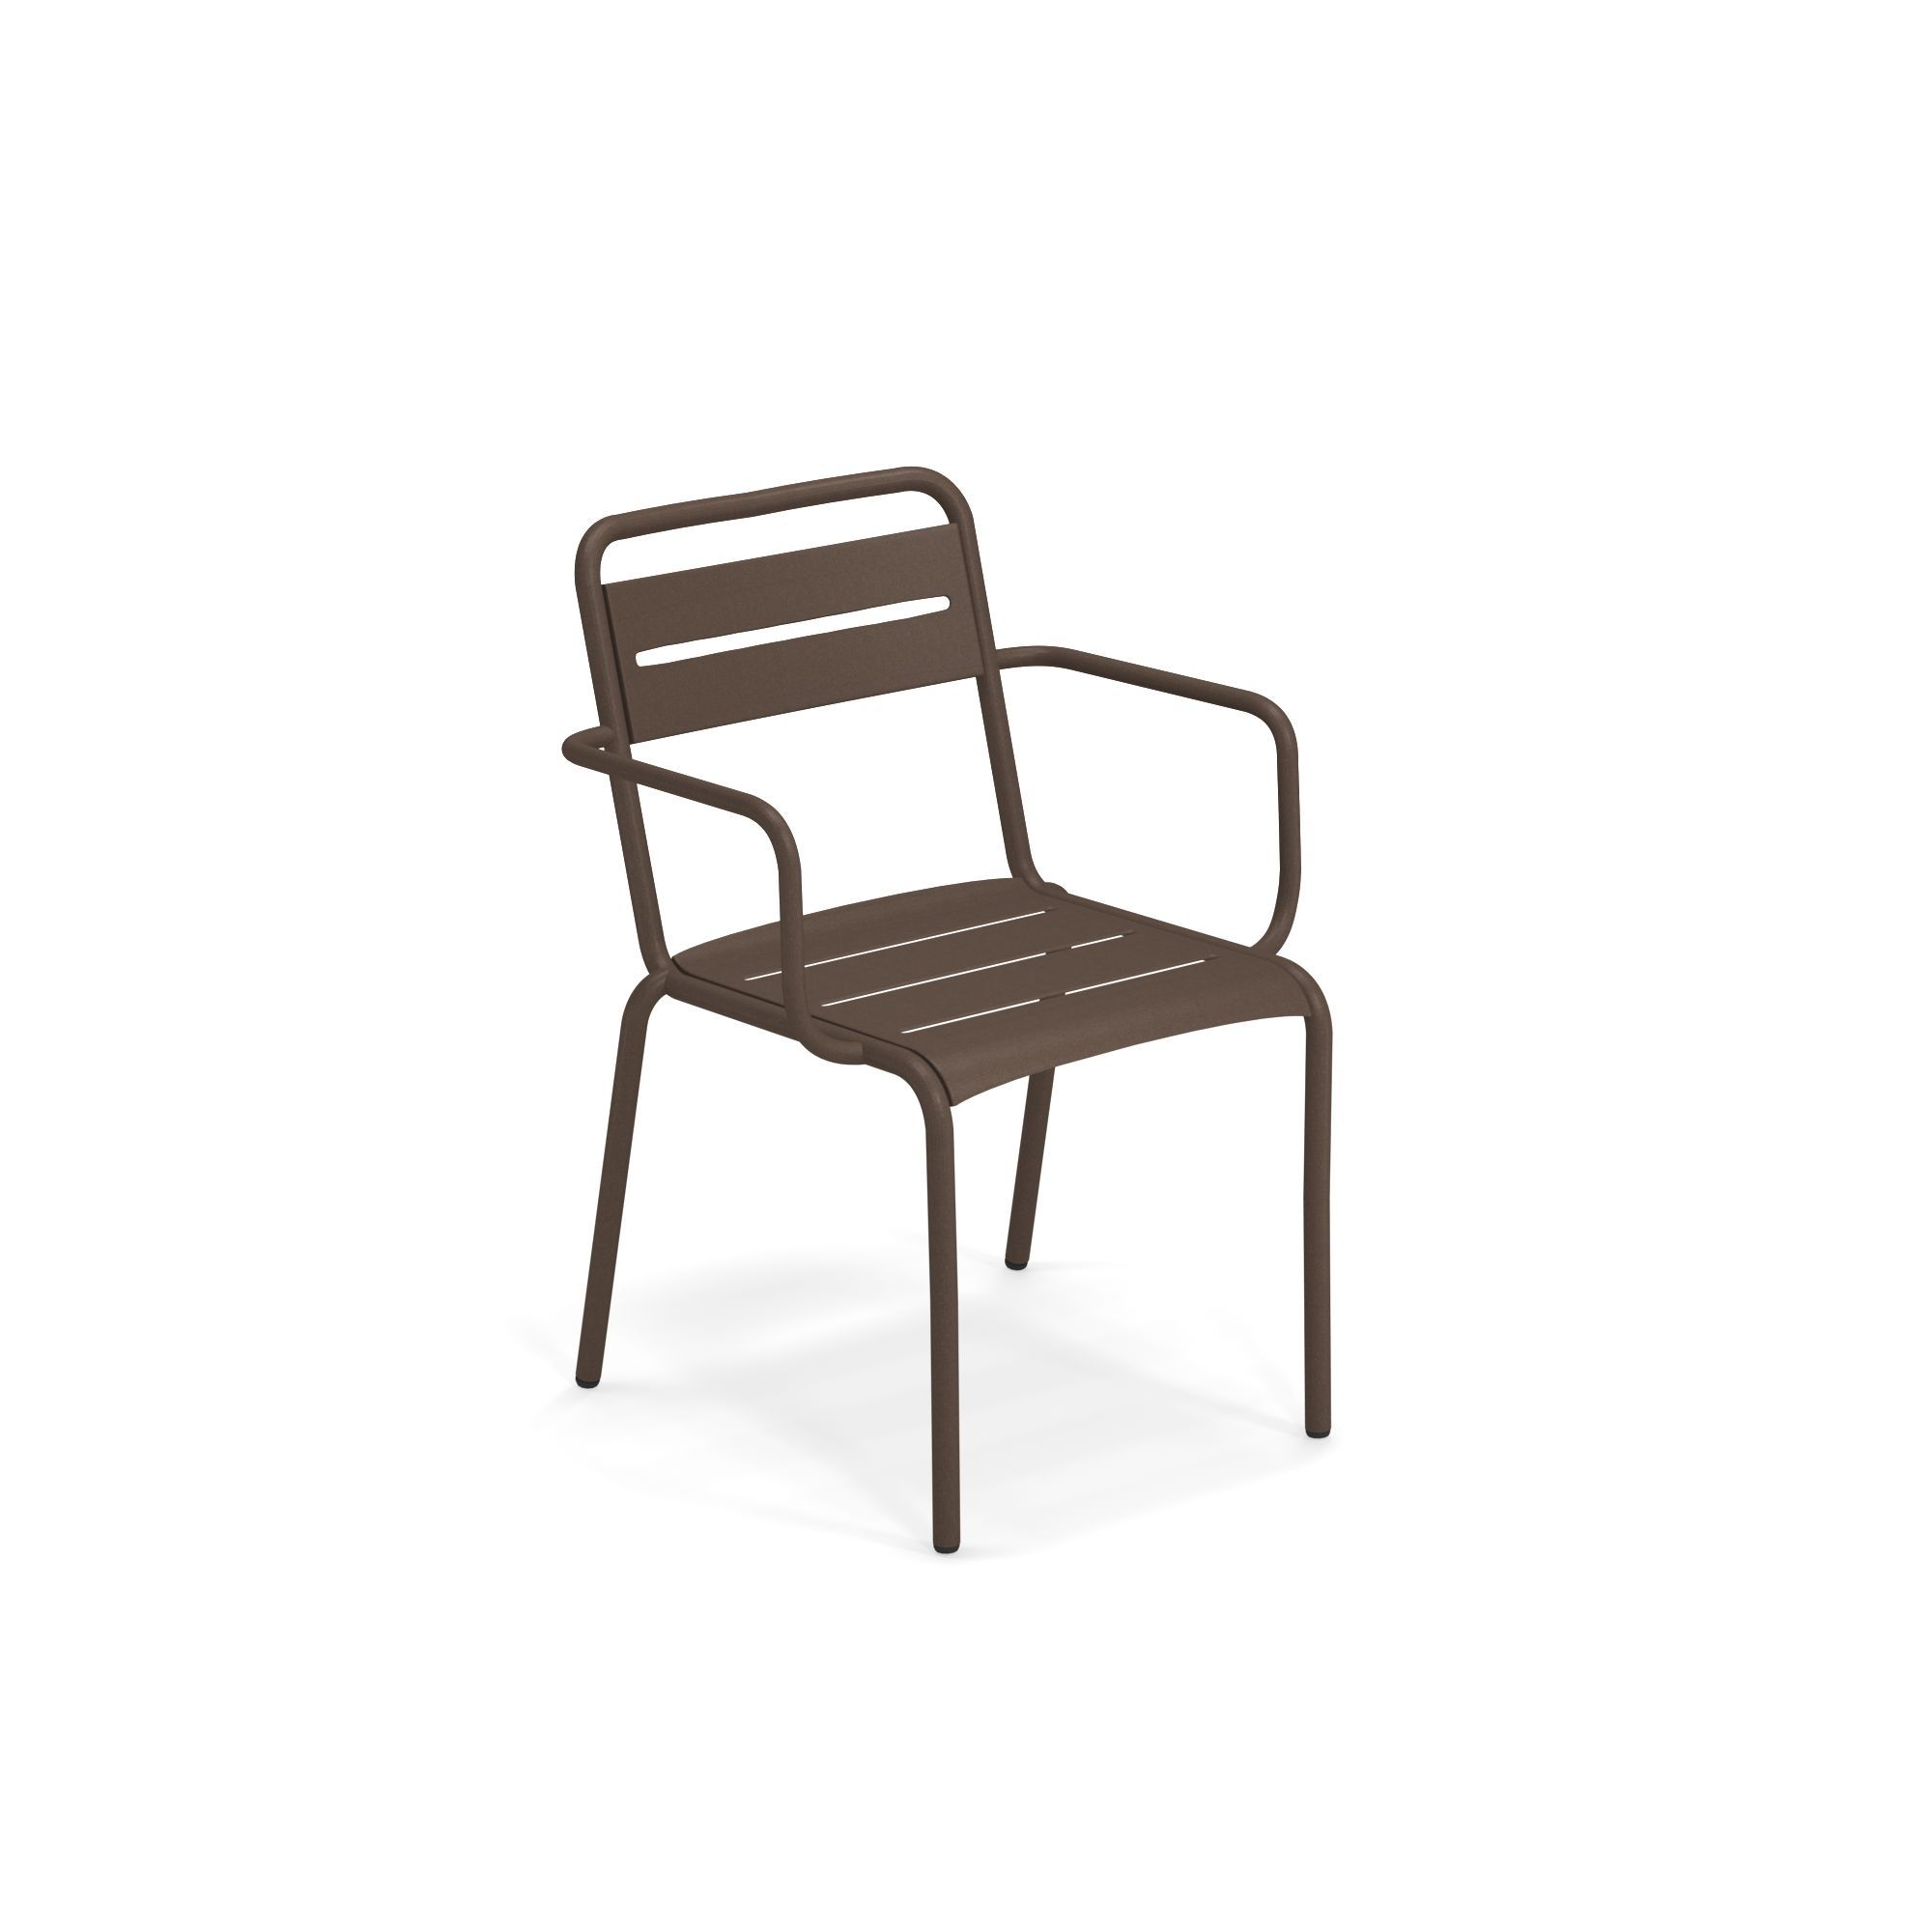 emuamericas, llc 162-41 chair, armchair, stacking, outdoor